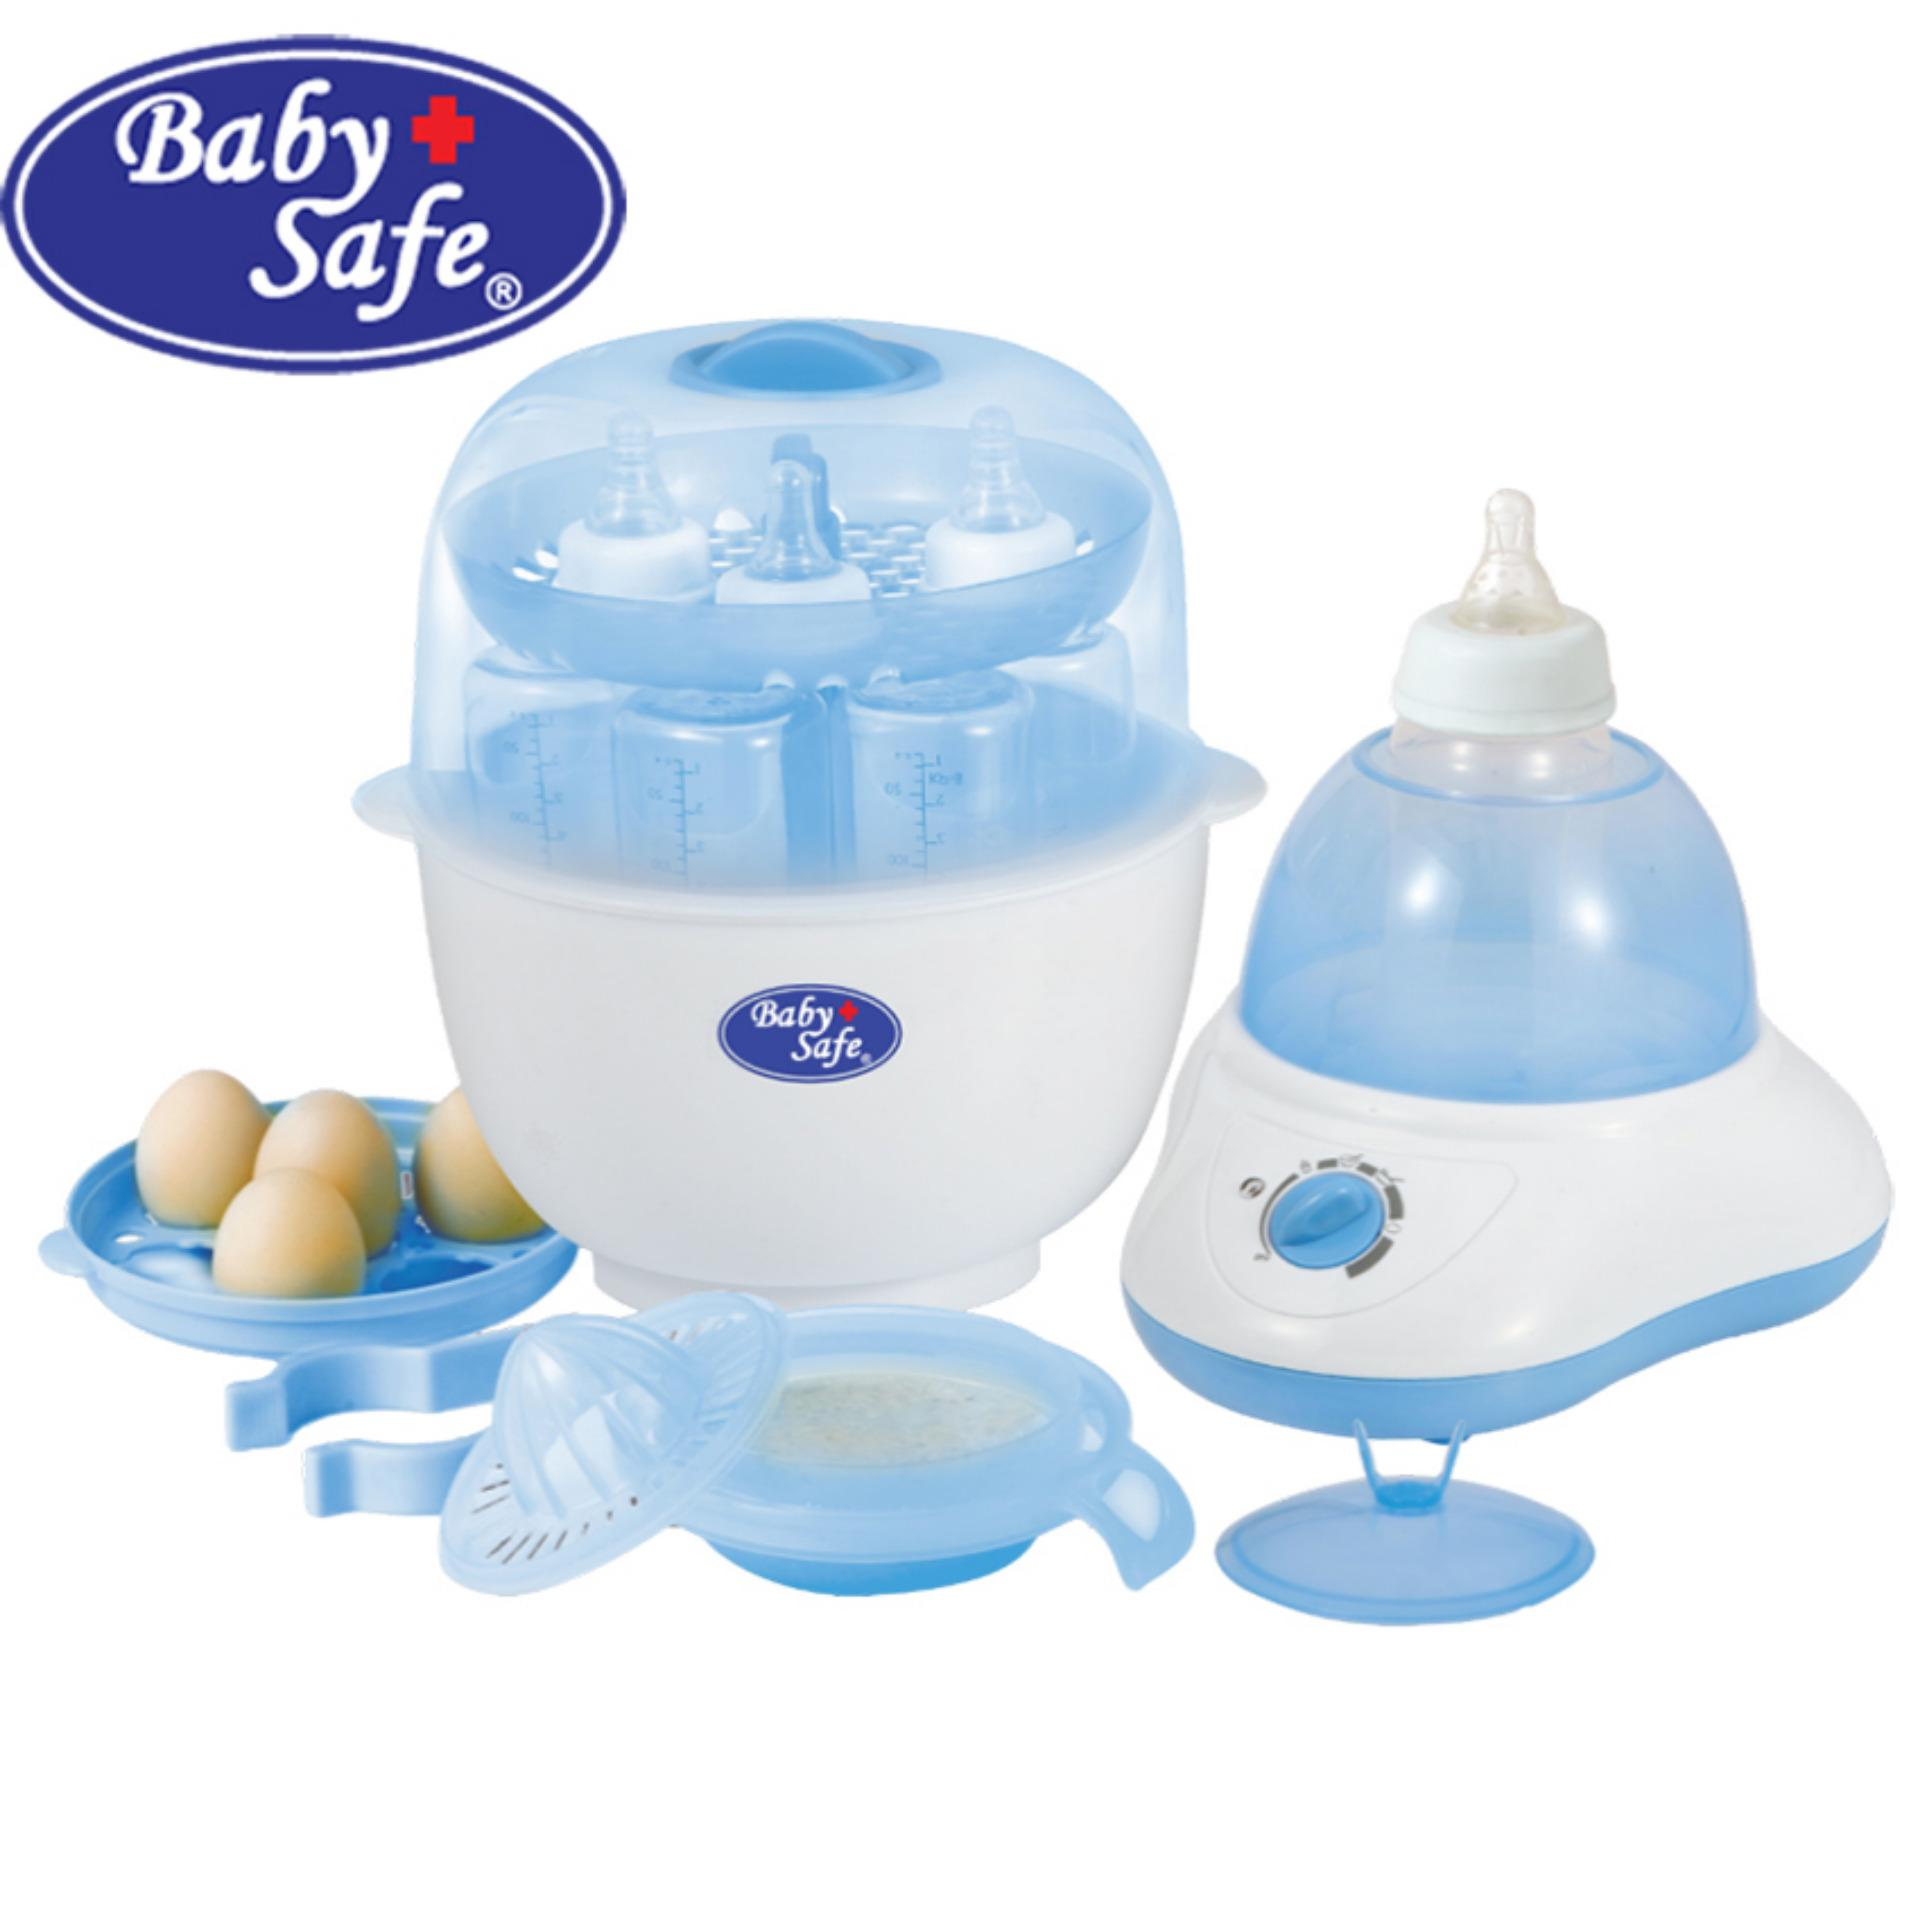 Kualitas Baby Safe Lb 309 Multifunction Bottle Sterilizer Baby Safe